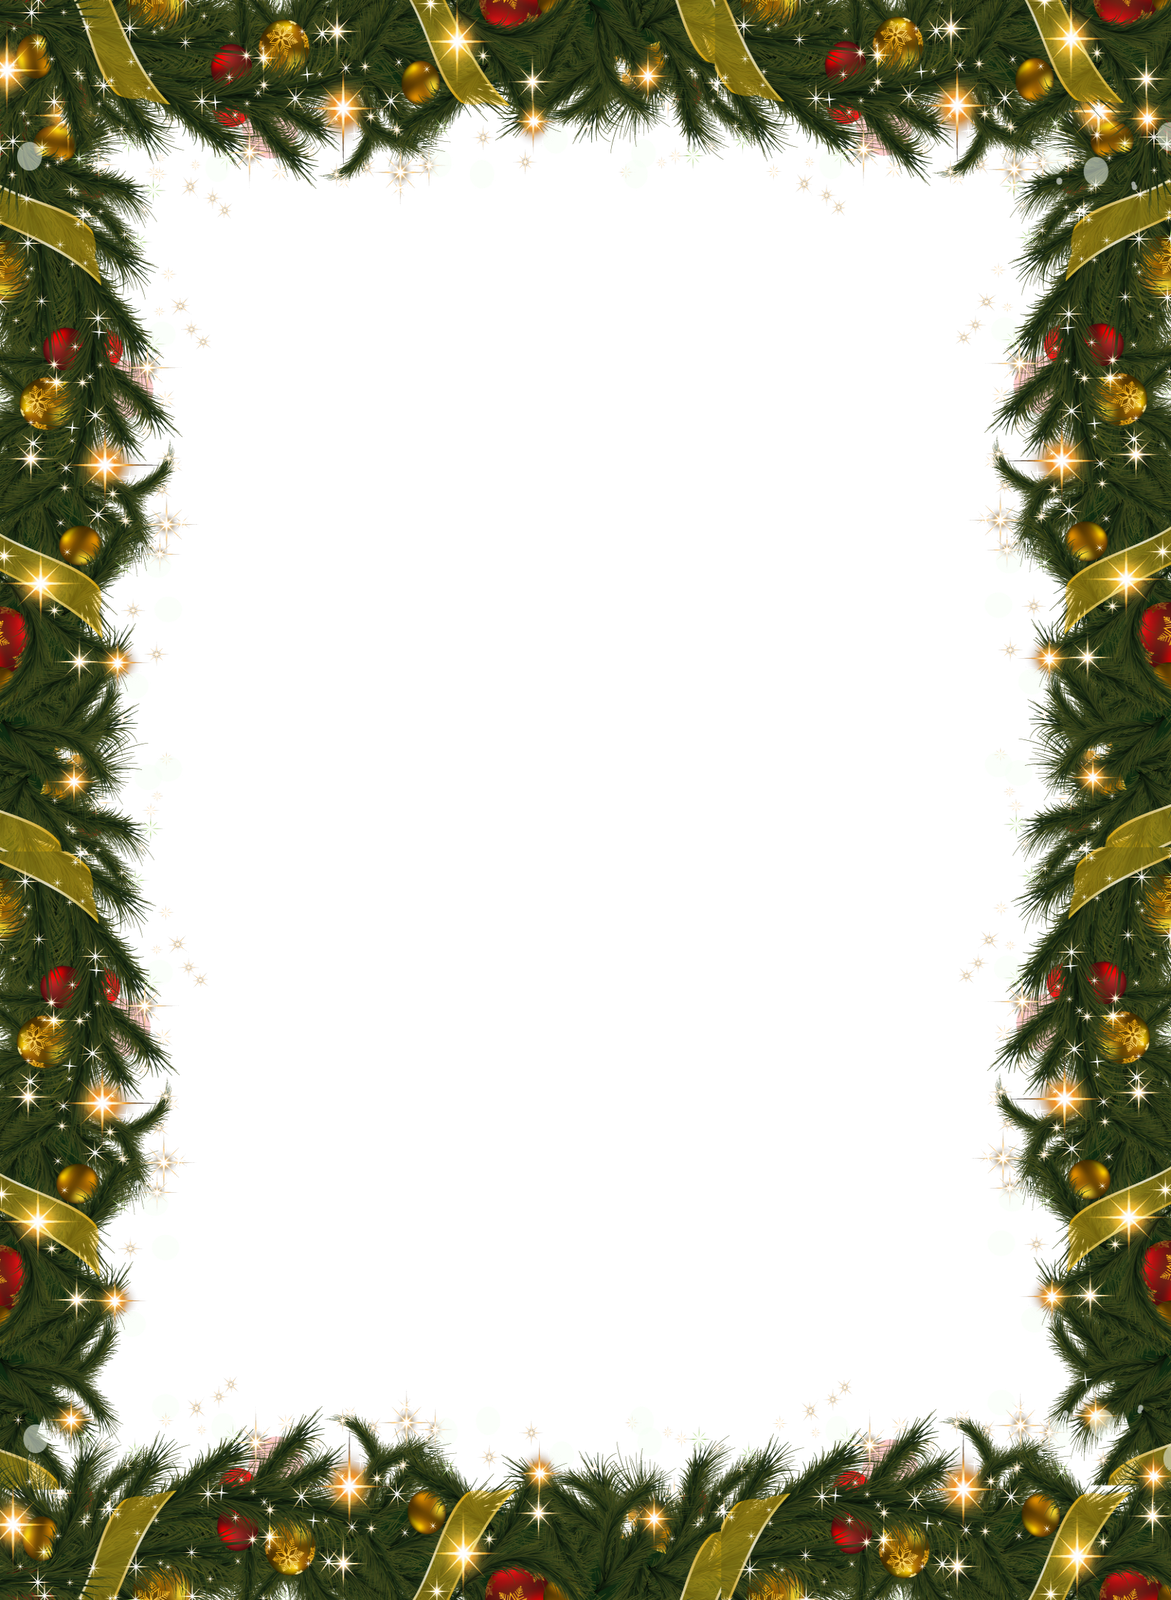 Christmas holiday frame with. Environment clipart border